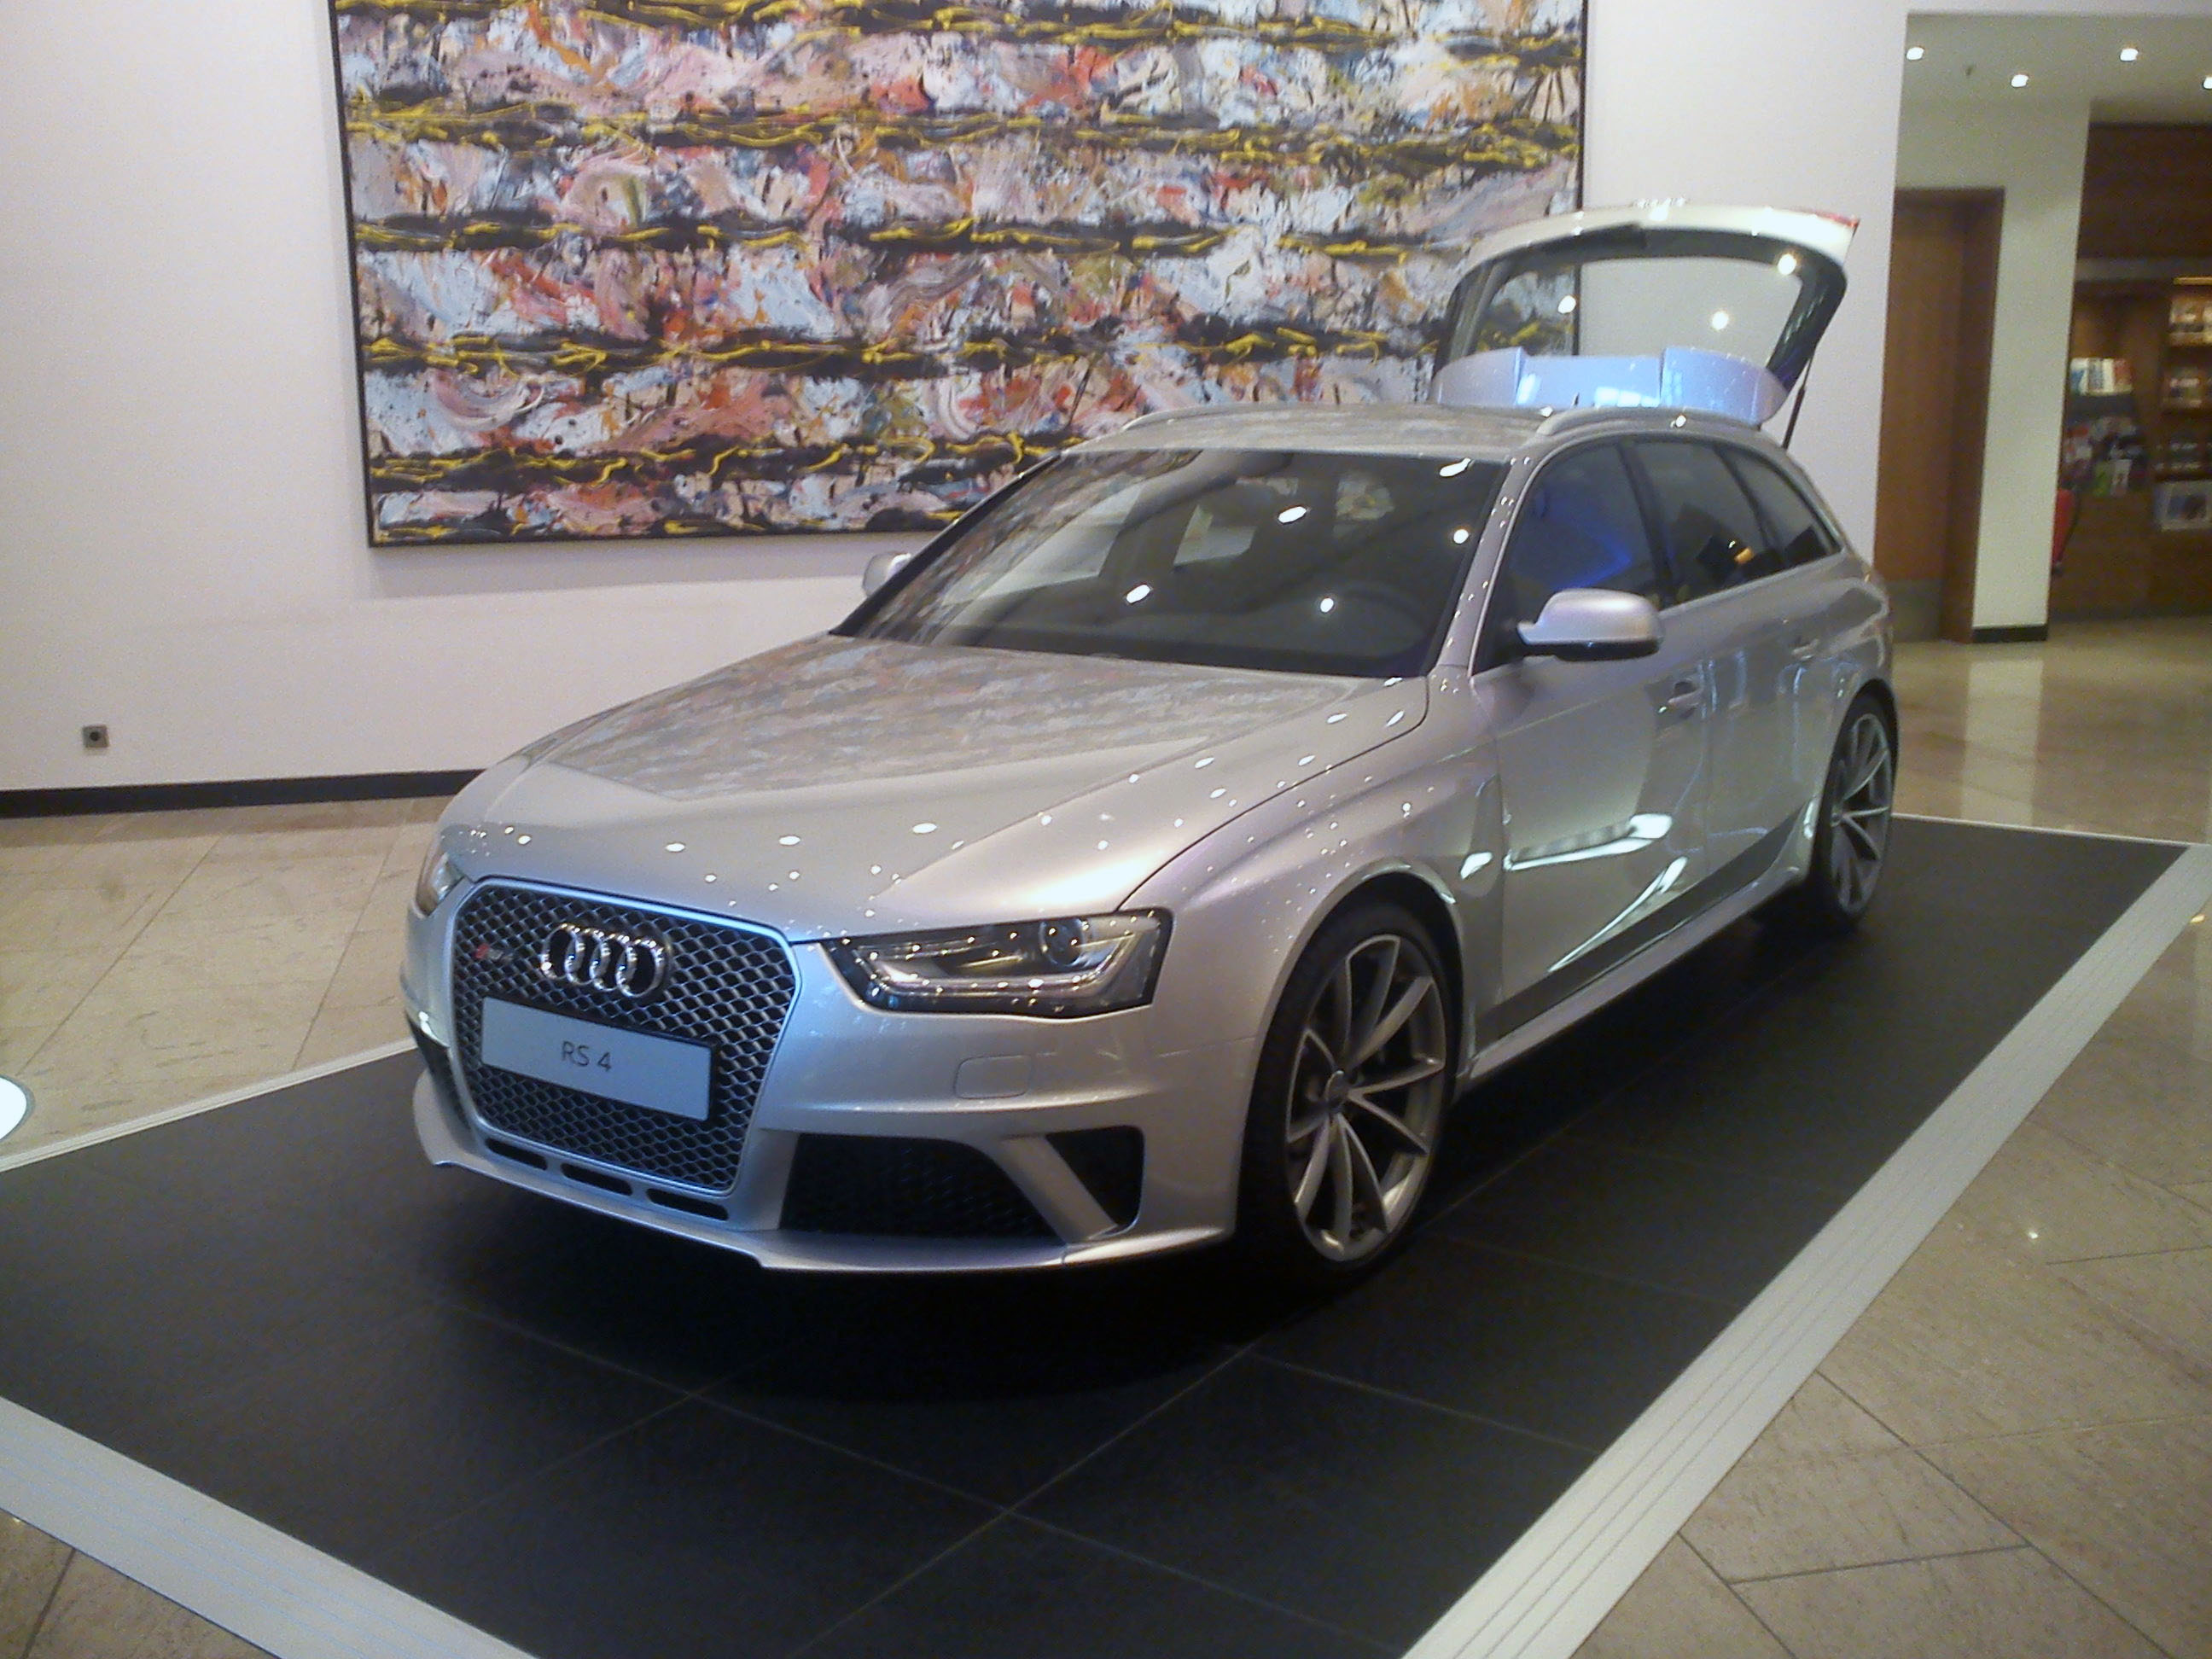 file silver audi rs4 avant b8 wikimedia commons. Black Bedroom Furniture Sets. Home Design Ideas